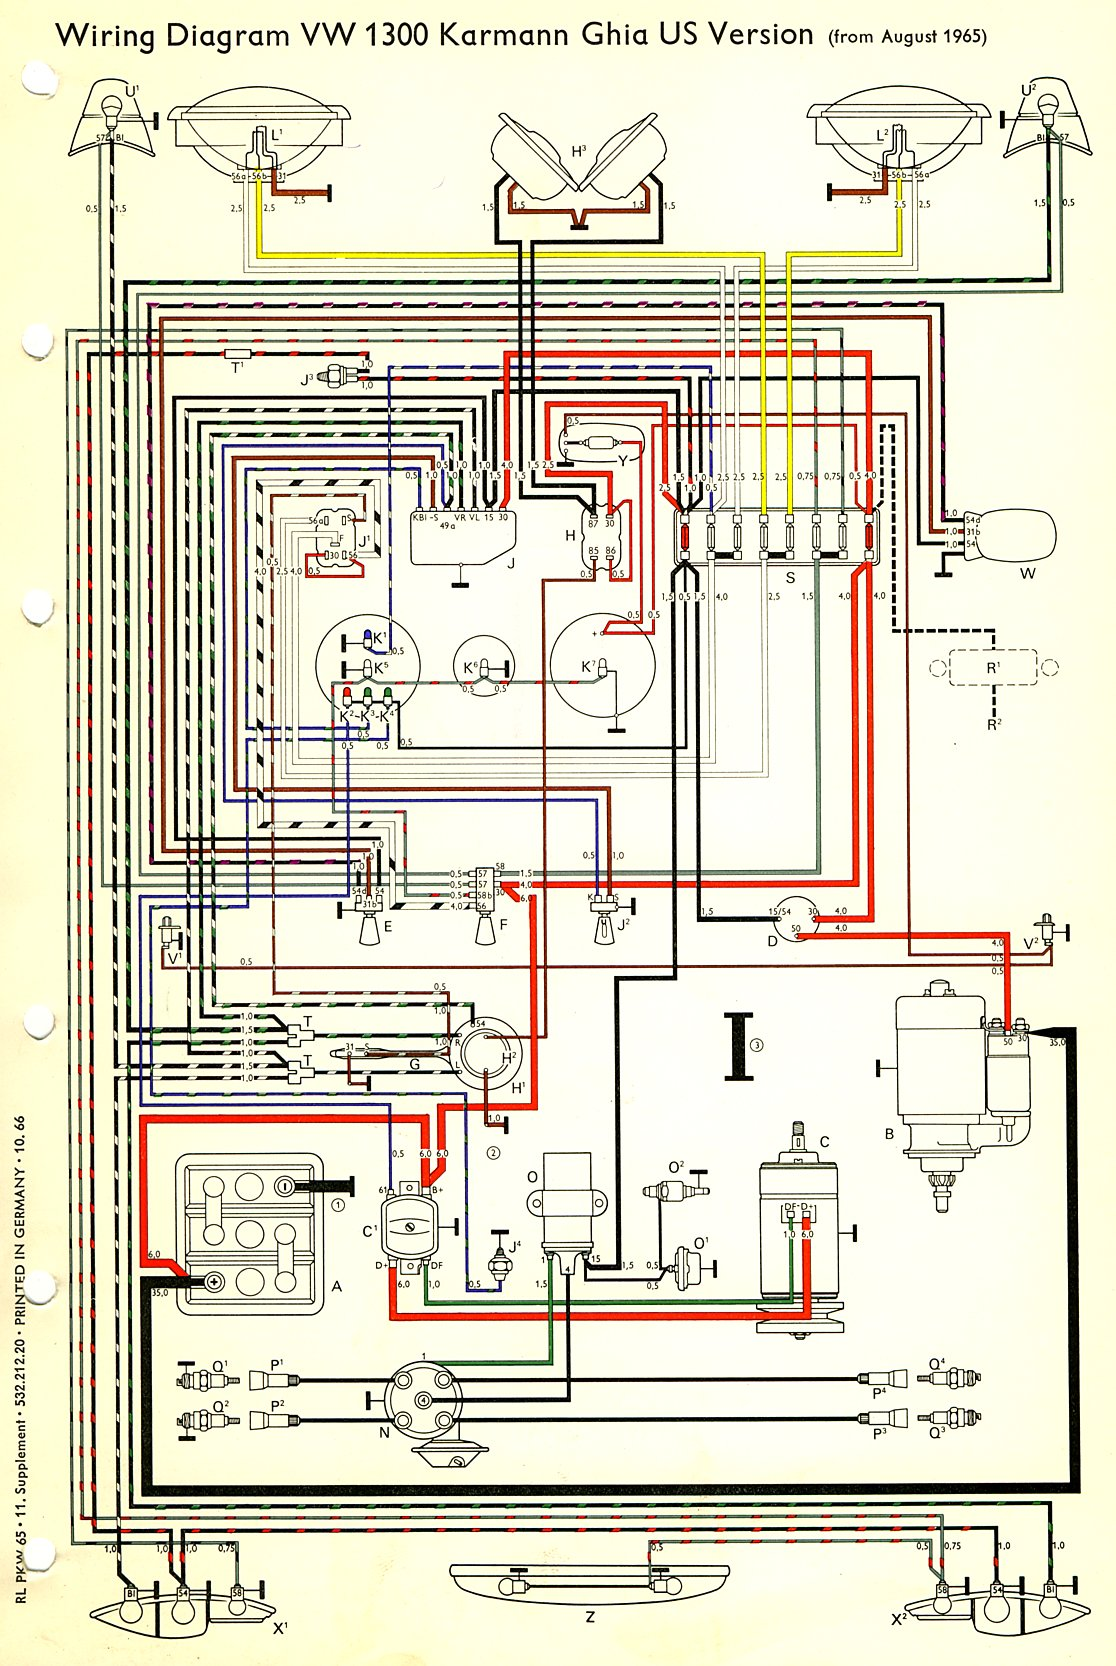 ghia_66_USA thesamba com karmann ghia wiring diagrams wiring diagram for dummies at arjmand.co